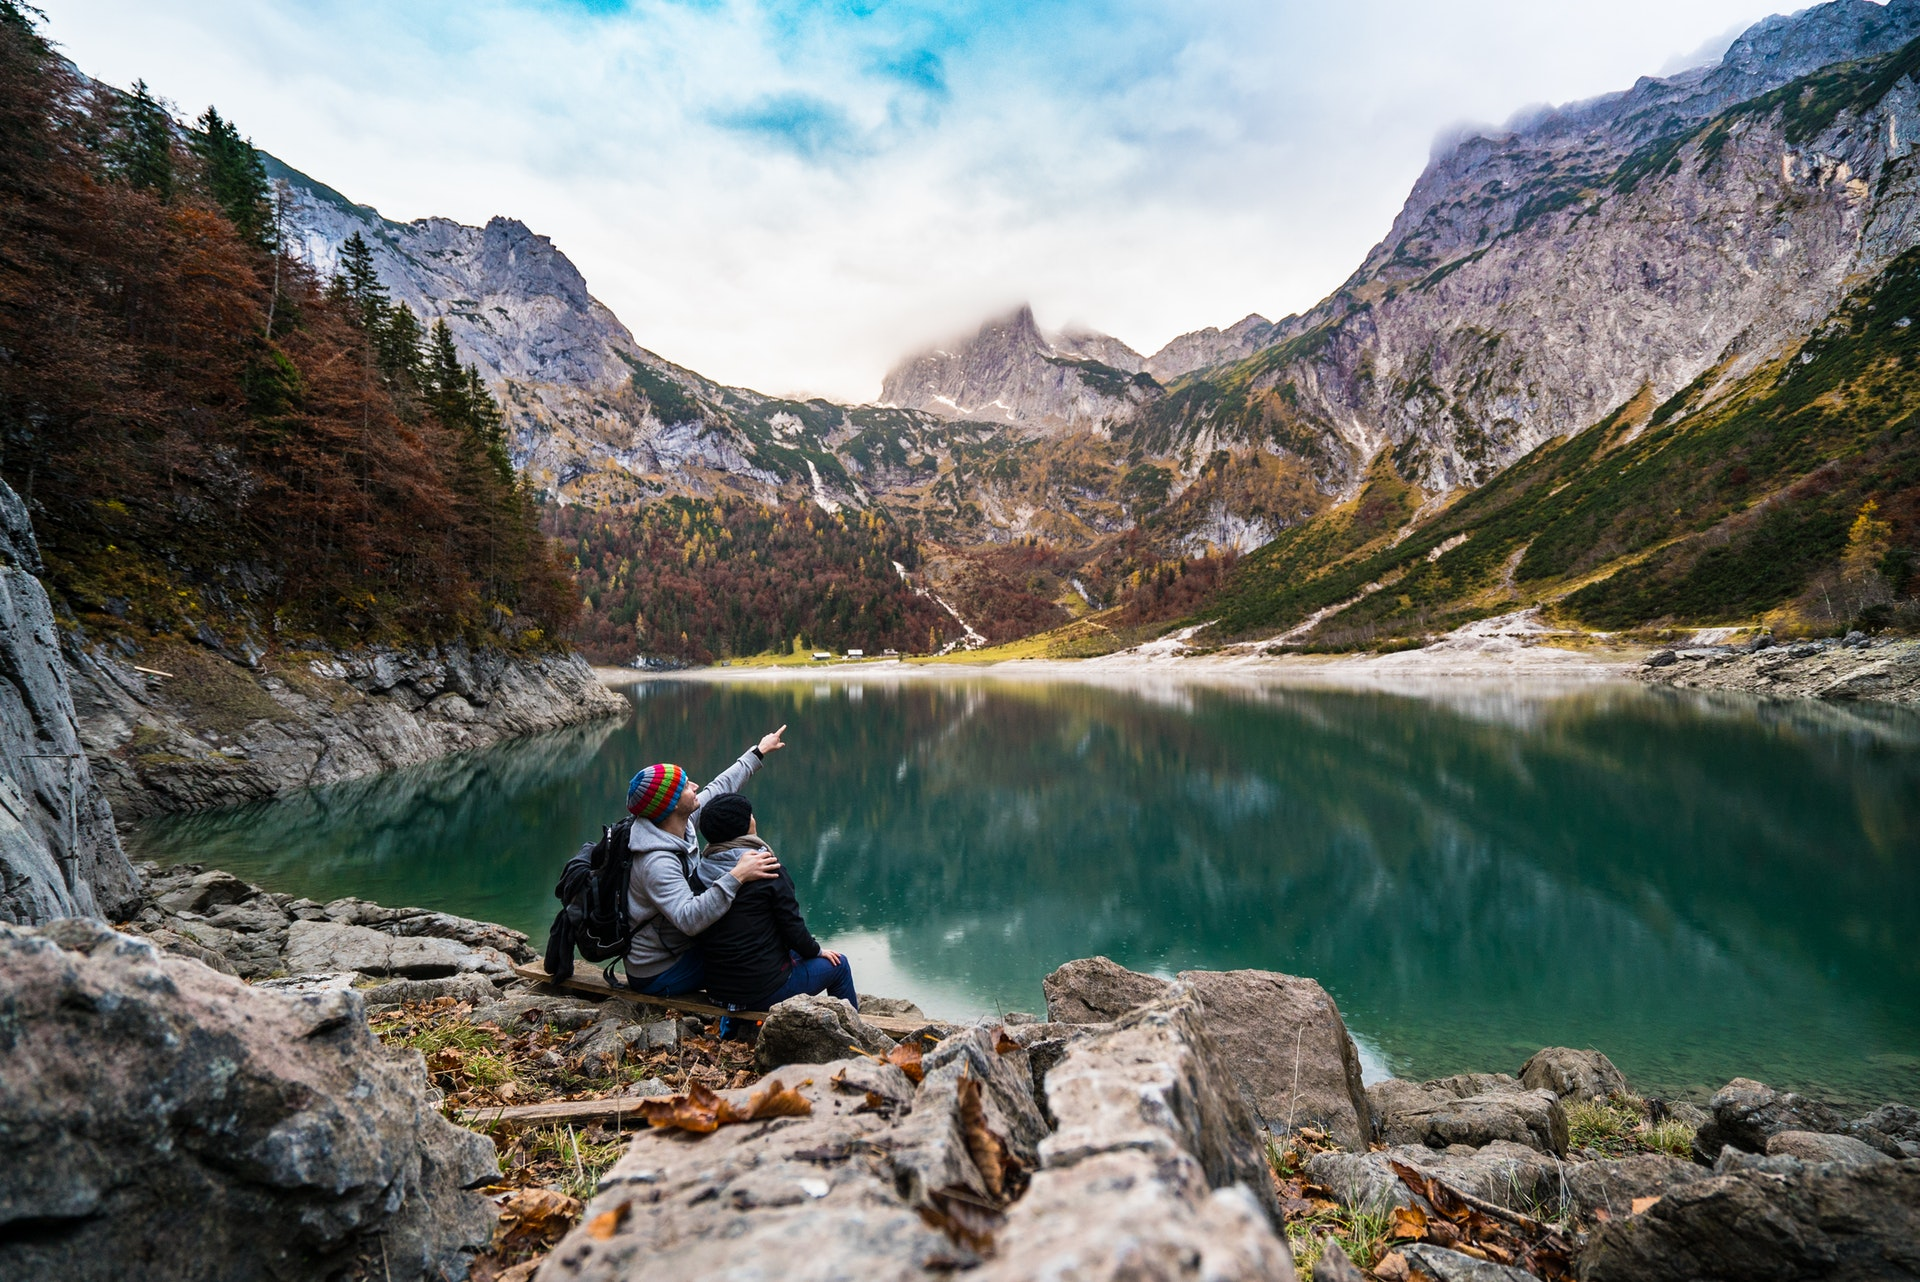 outdoor activities for couples